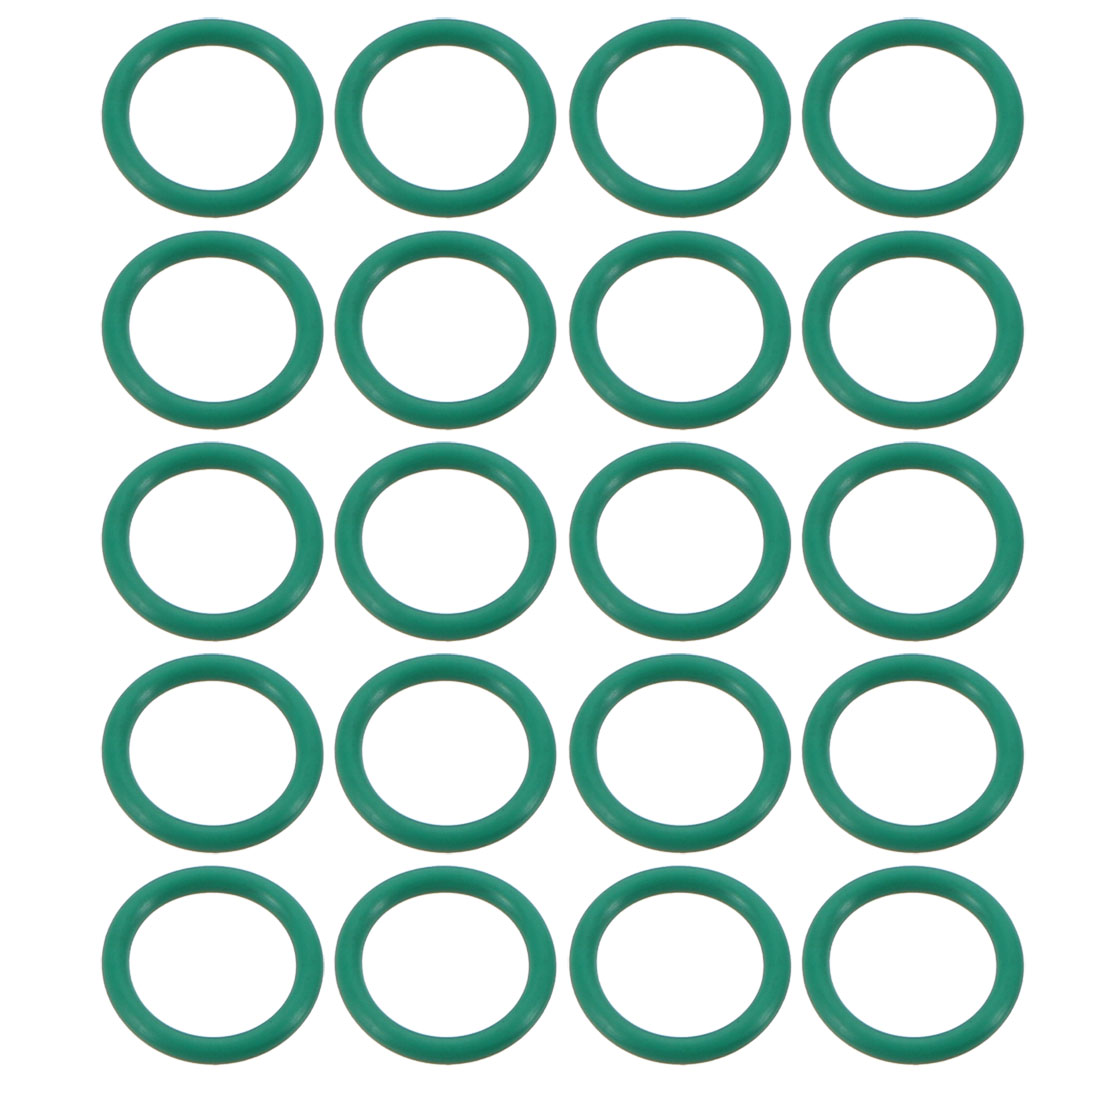 20pcs Green 12mm Outer Dia 1.5mm Thickness Sealing Ring O-shape Rubber Grommet